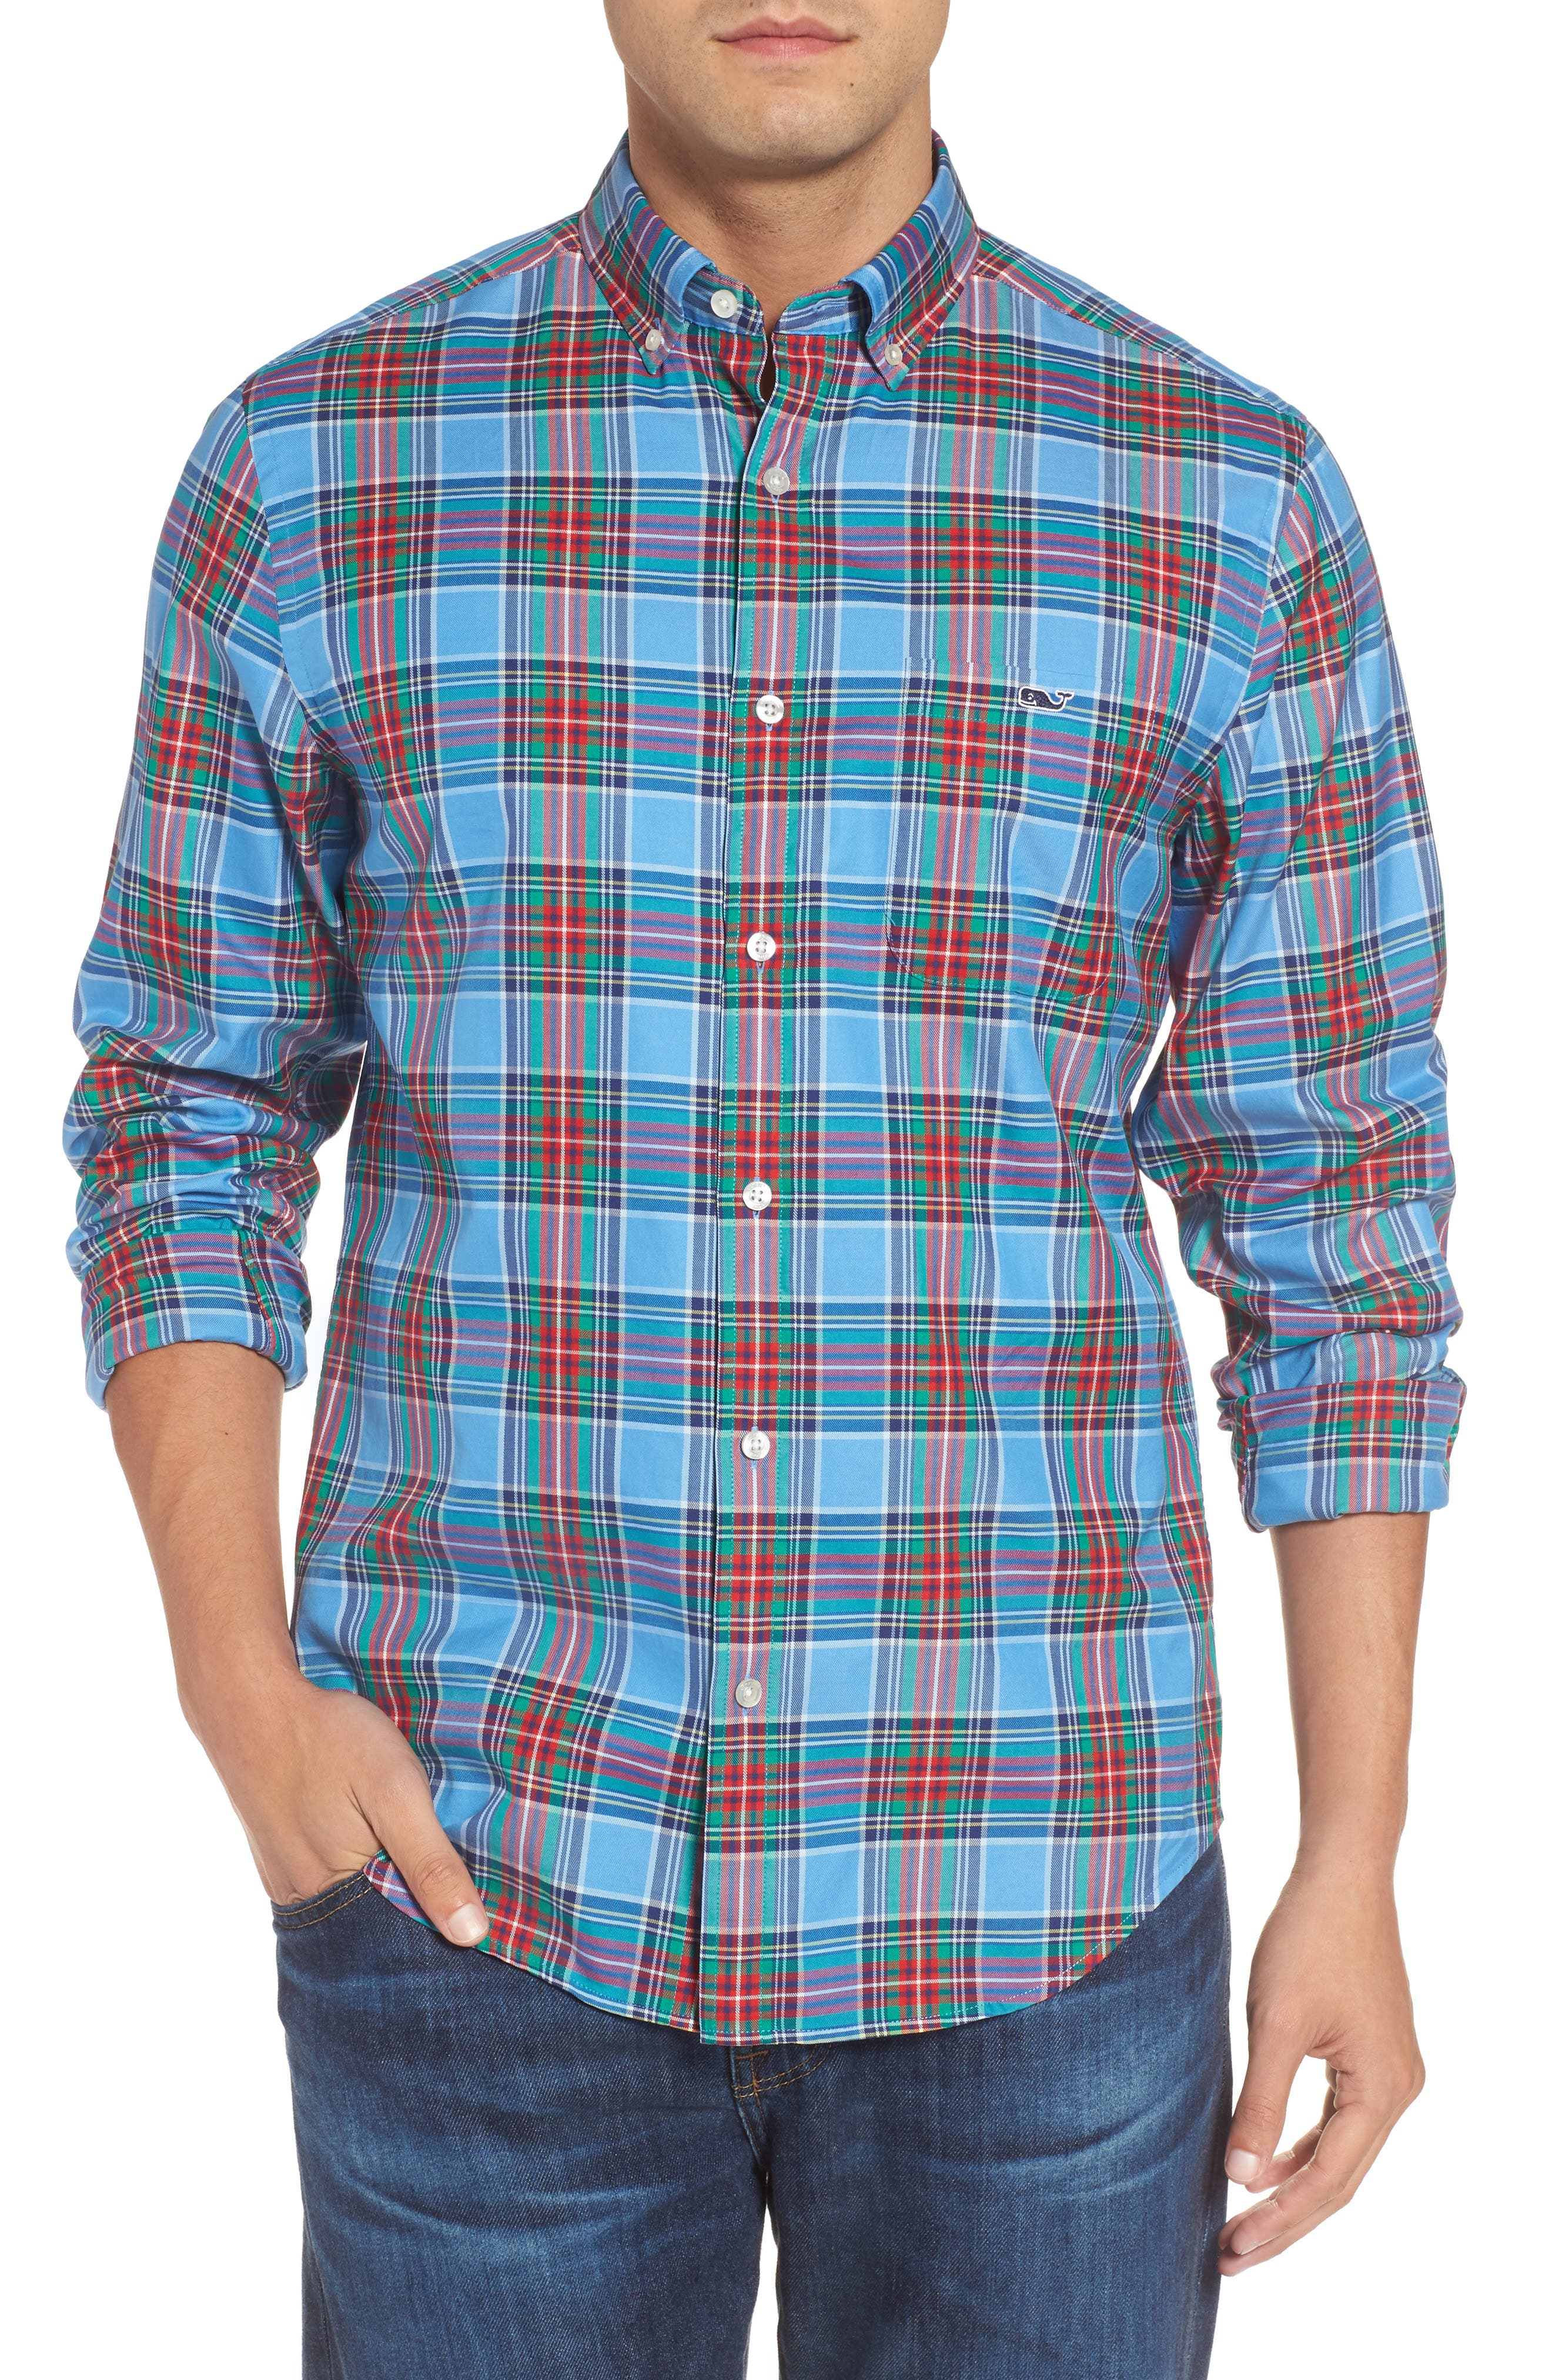 Alternate Image 1 Selected - vineyard vines Tucker Belmont Classic Fit Plaid Sport Shirt